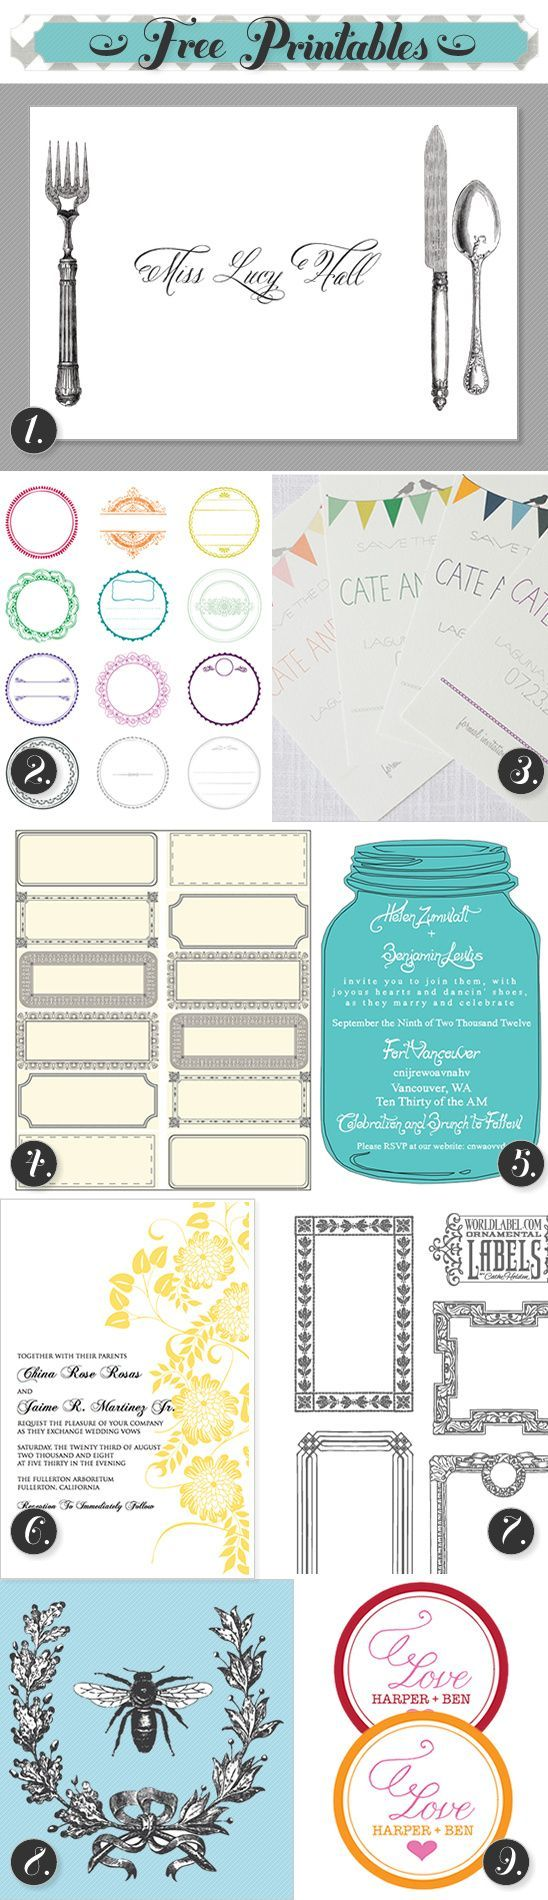 wedding invitation label templates%0A pdf format for resume